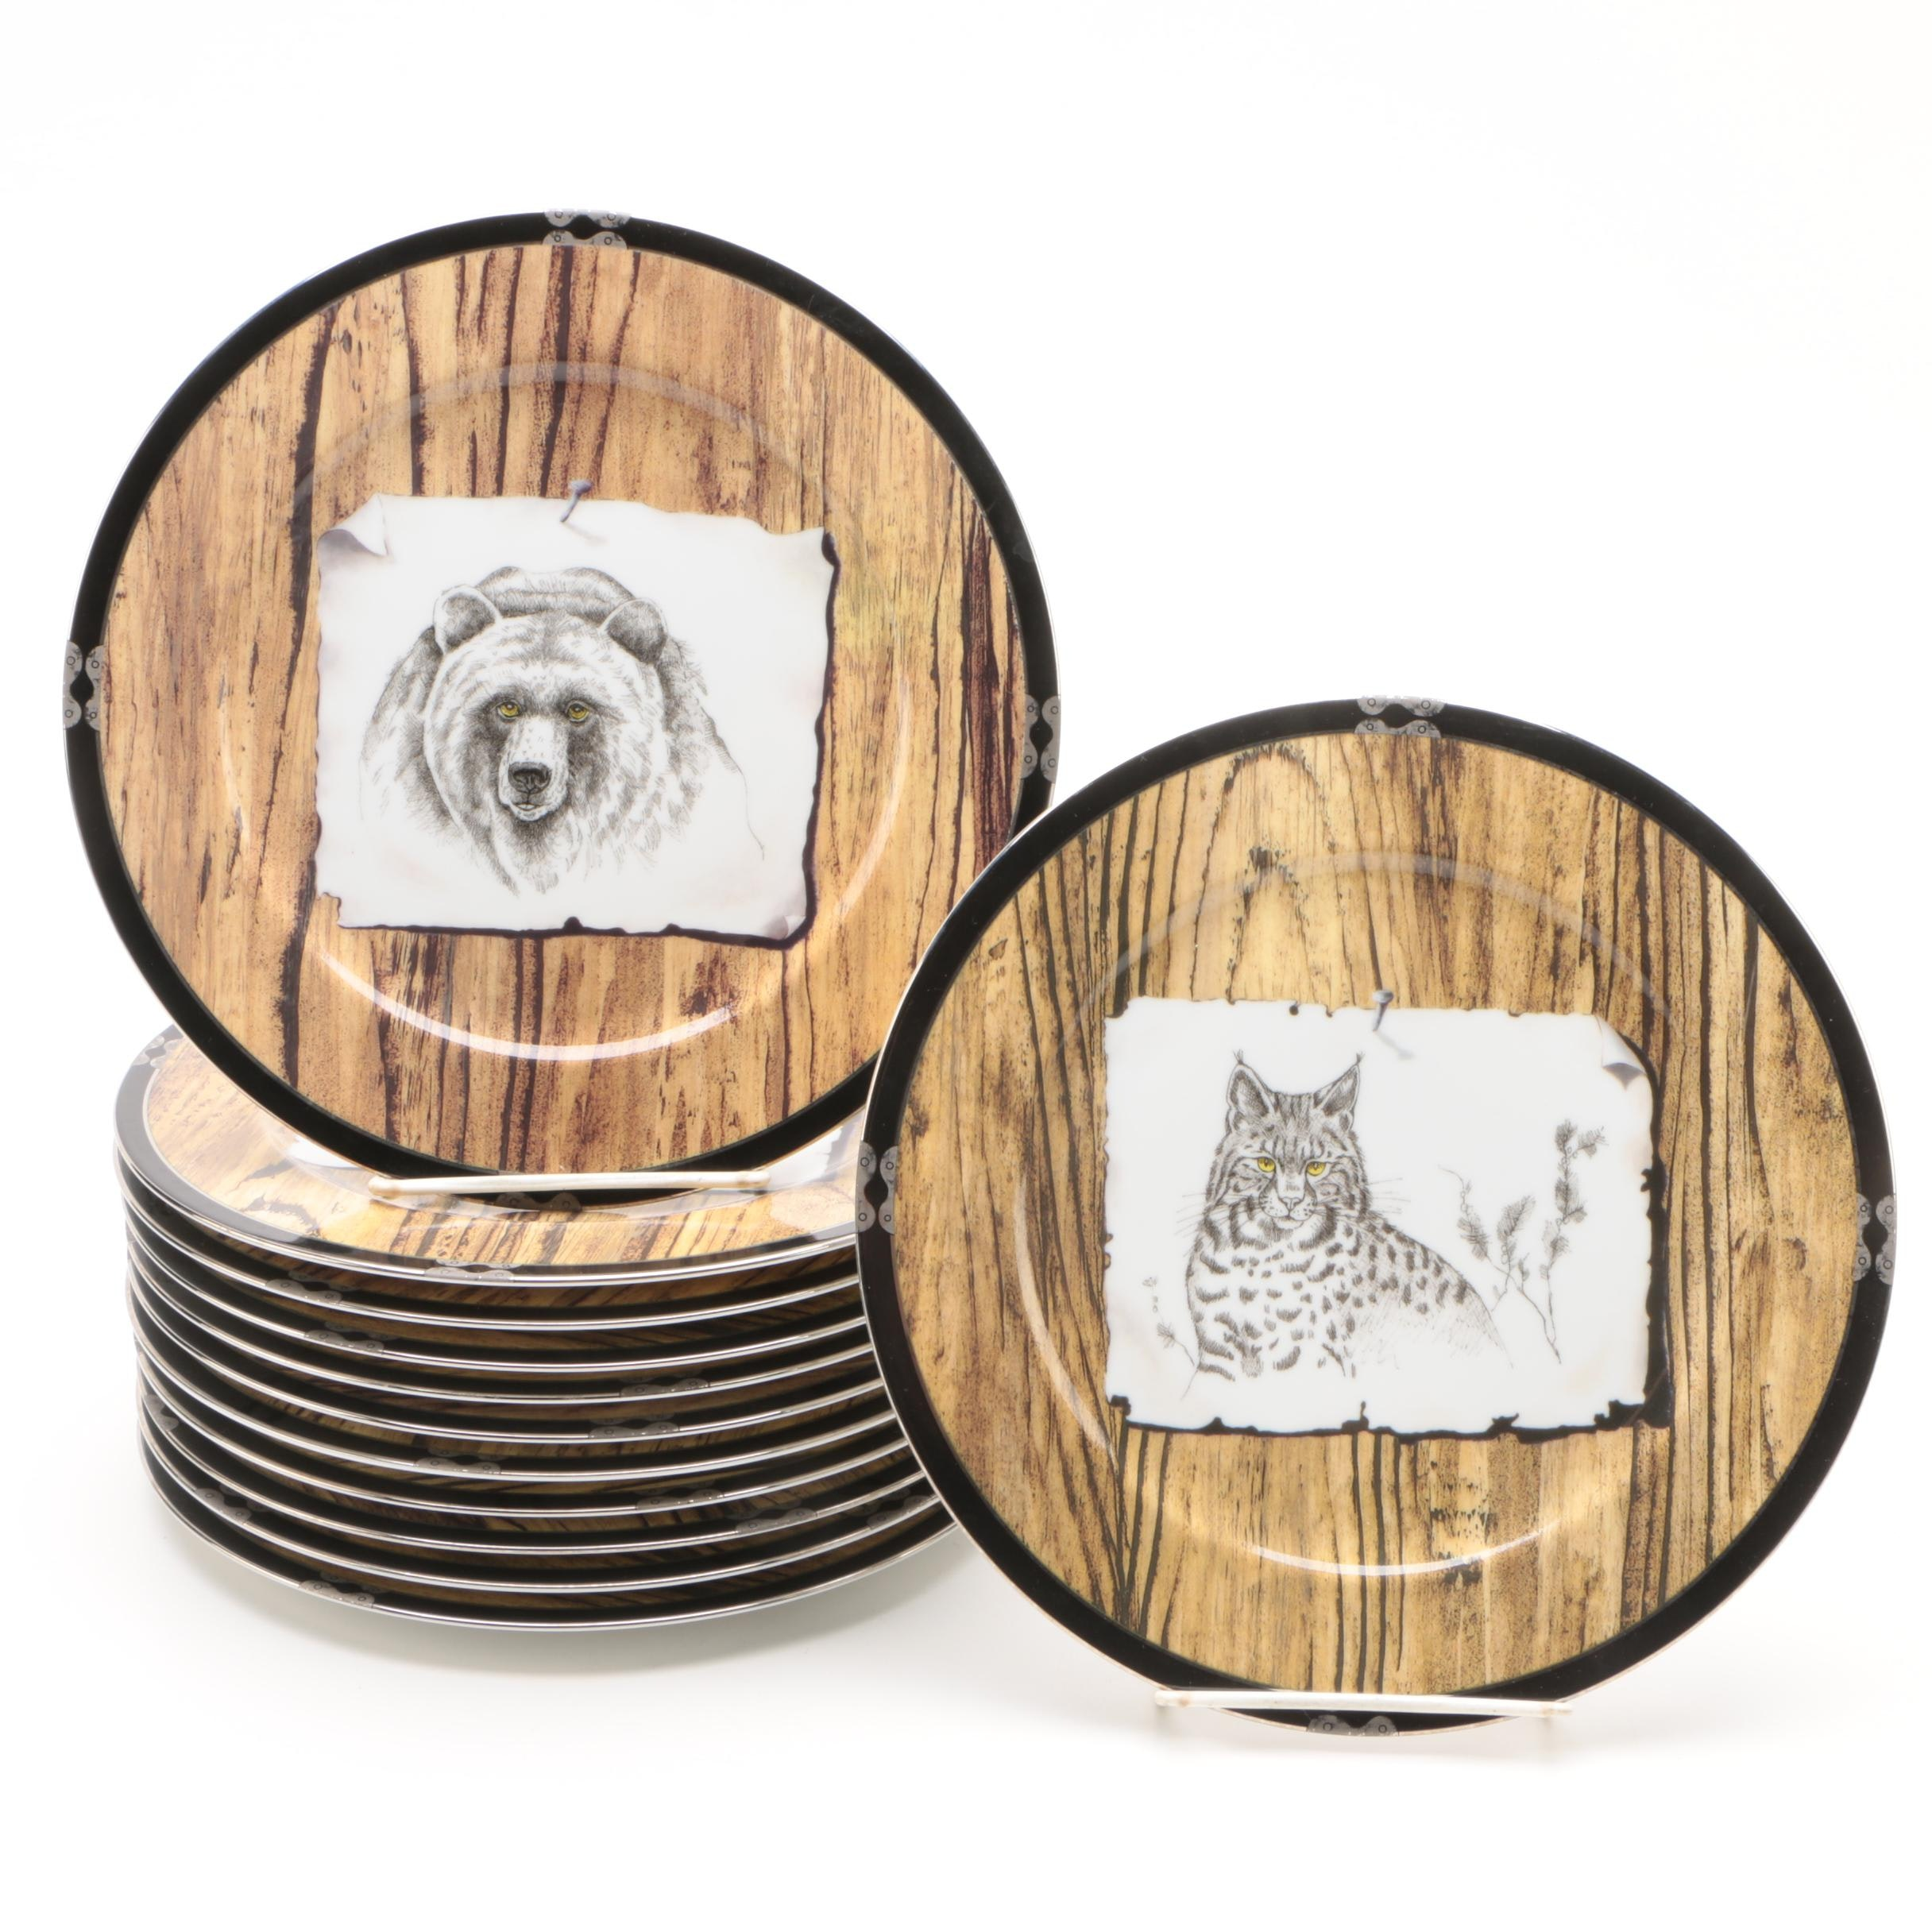 "Lynn Chase Designs ""American Pages"" Porcelain Salad Plates"